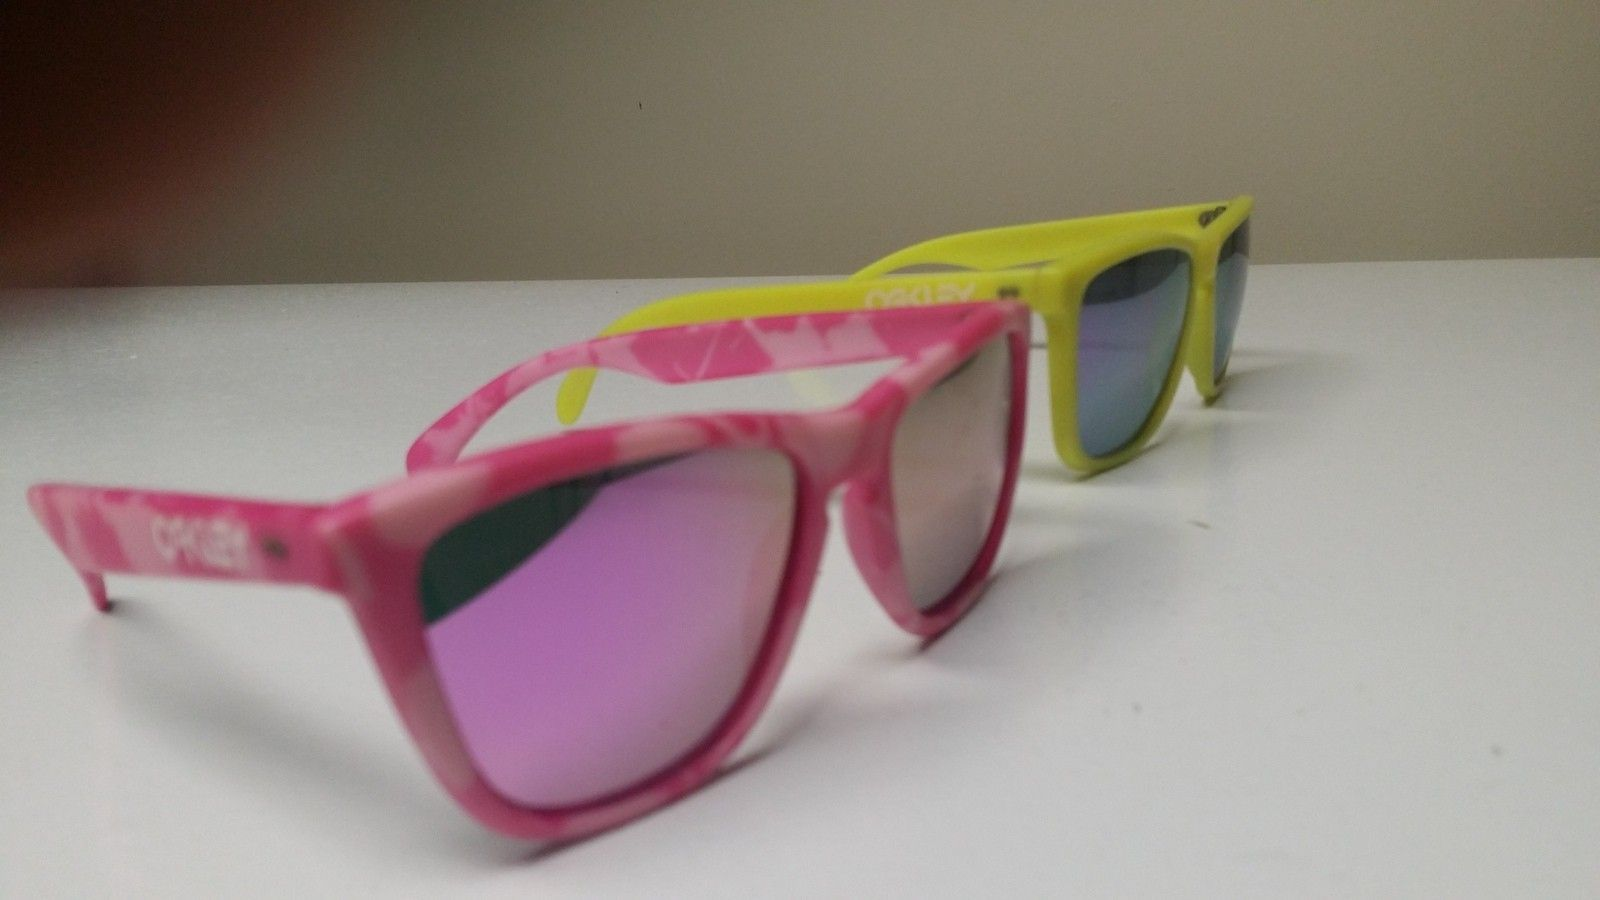 Differences in sizing between 1st generation frogskins. - 1438399955474-1602104773.jpg